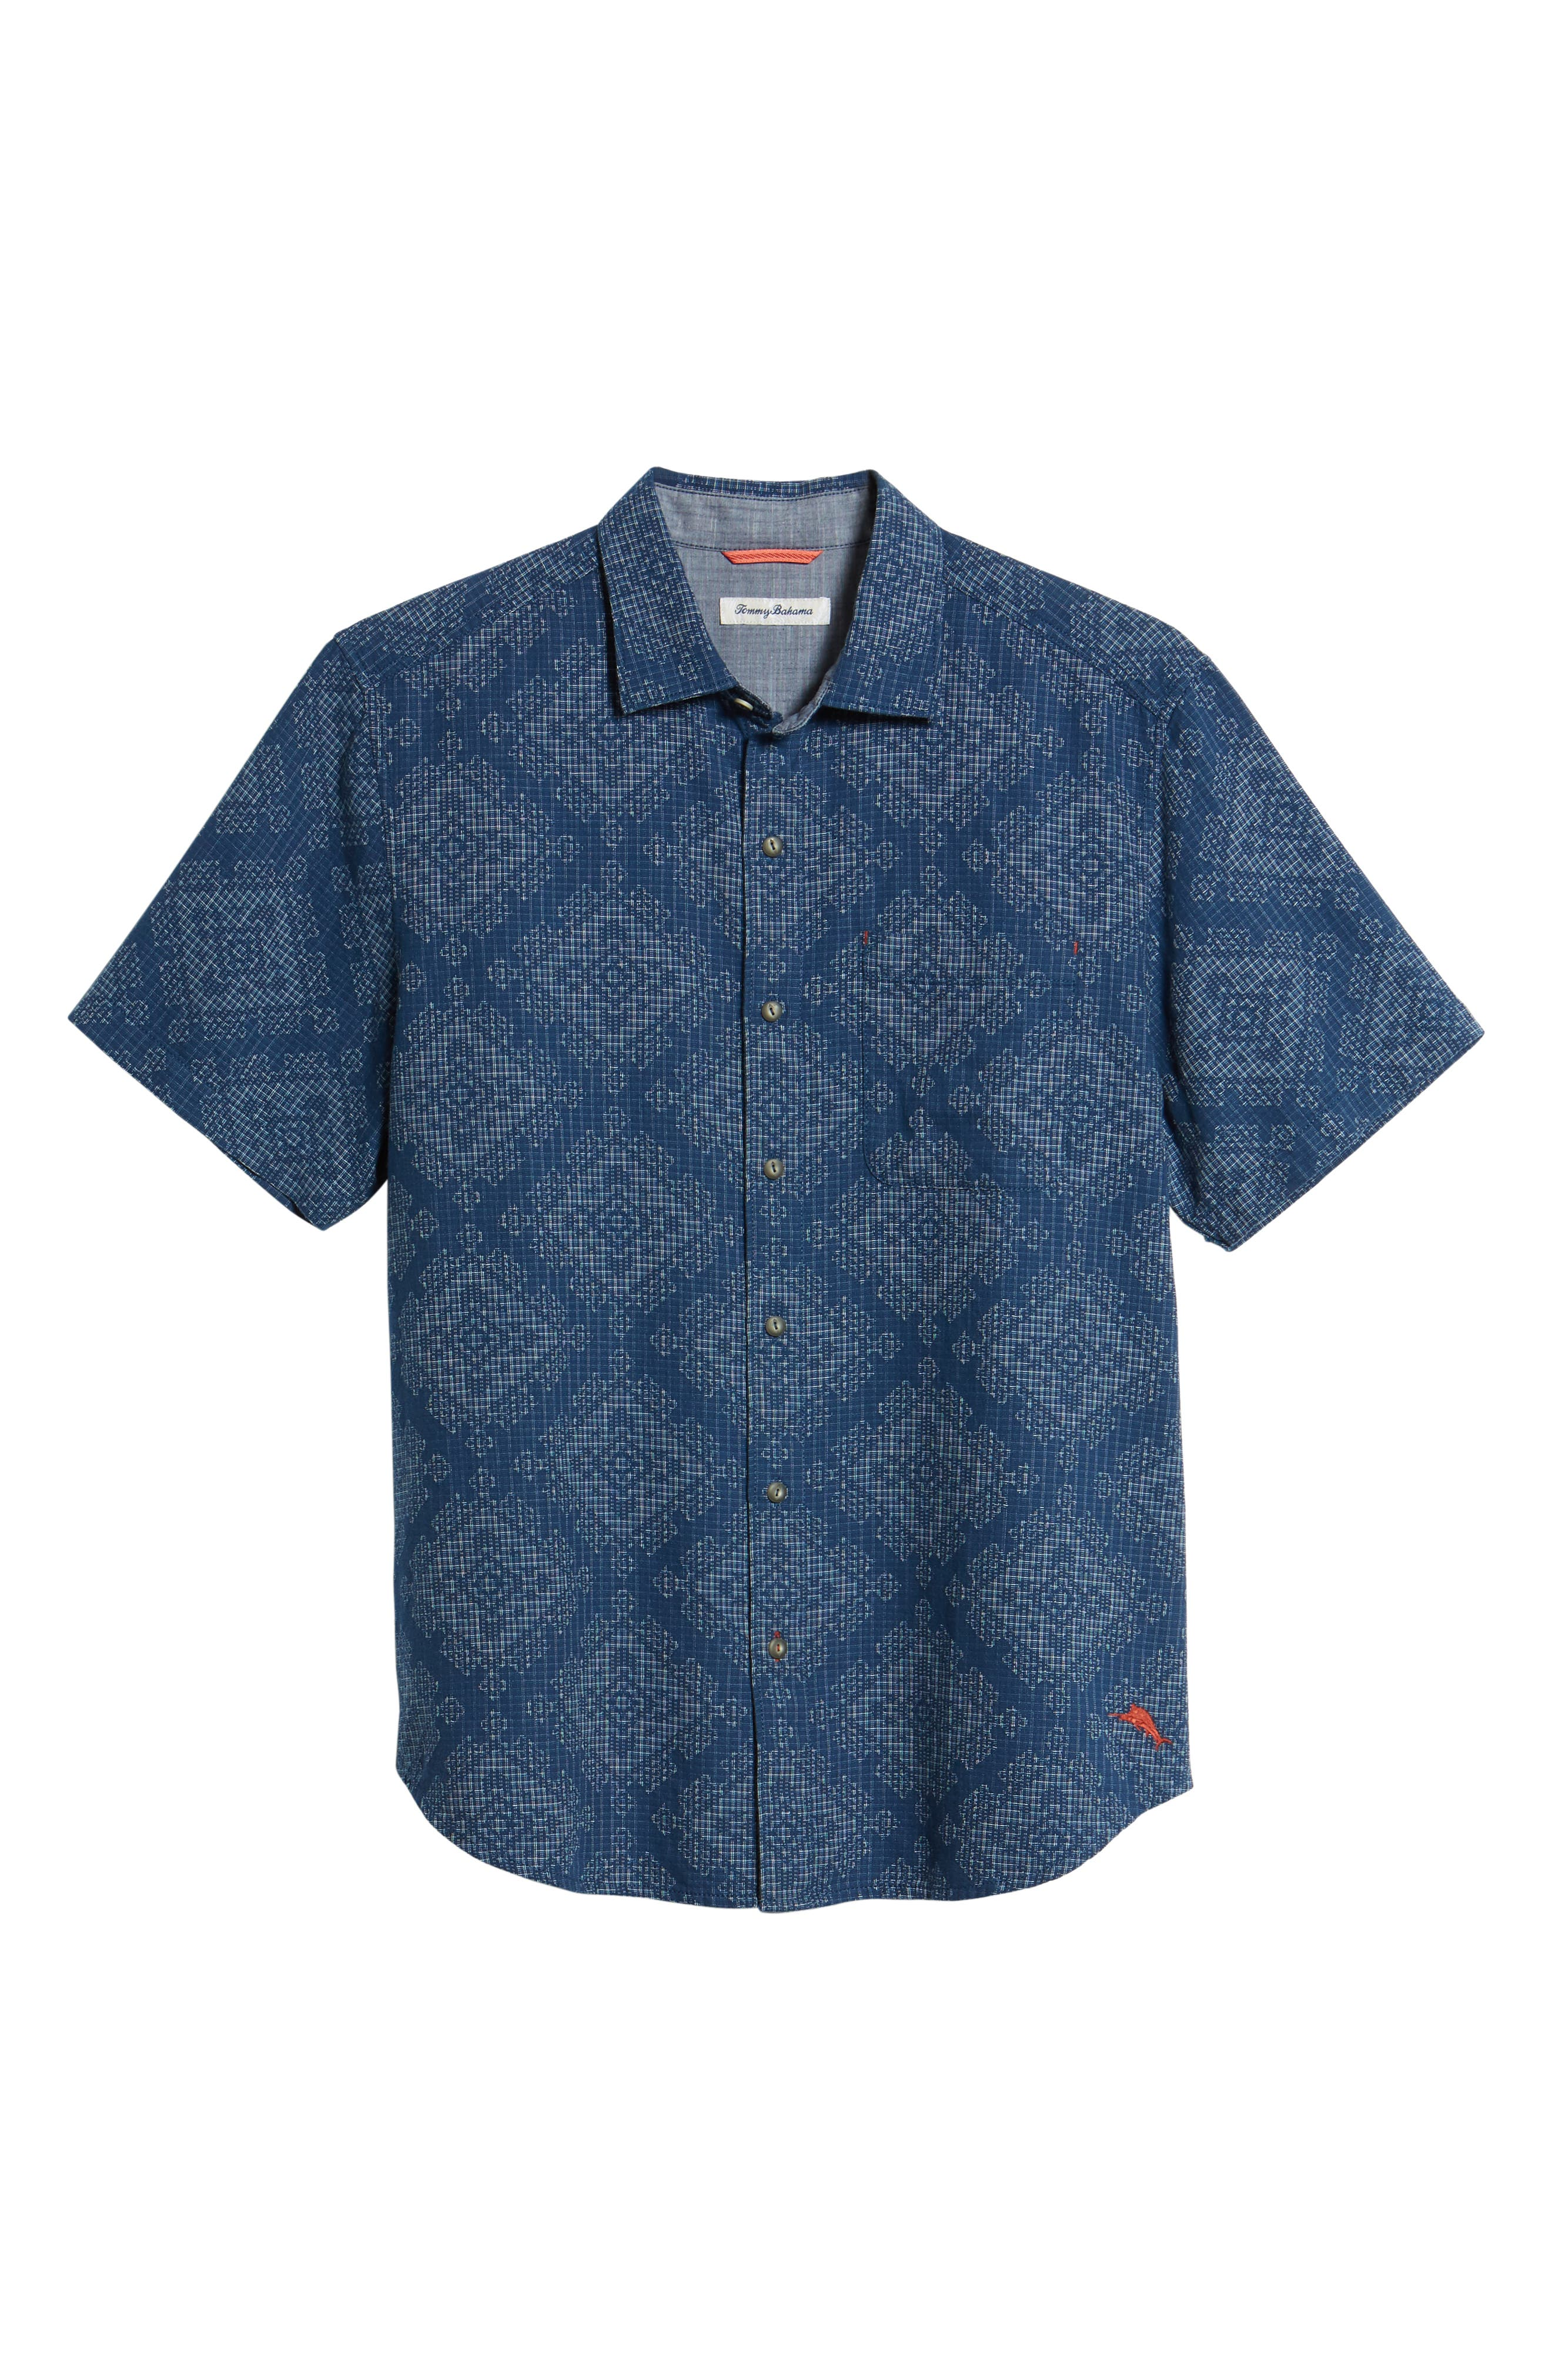 Geo de Mayo Sport Shirt,                             Alternate thumbnail 6, color,                             THRONE BLUE